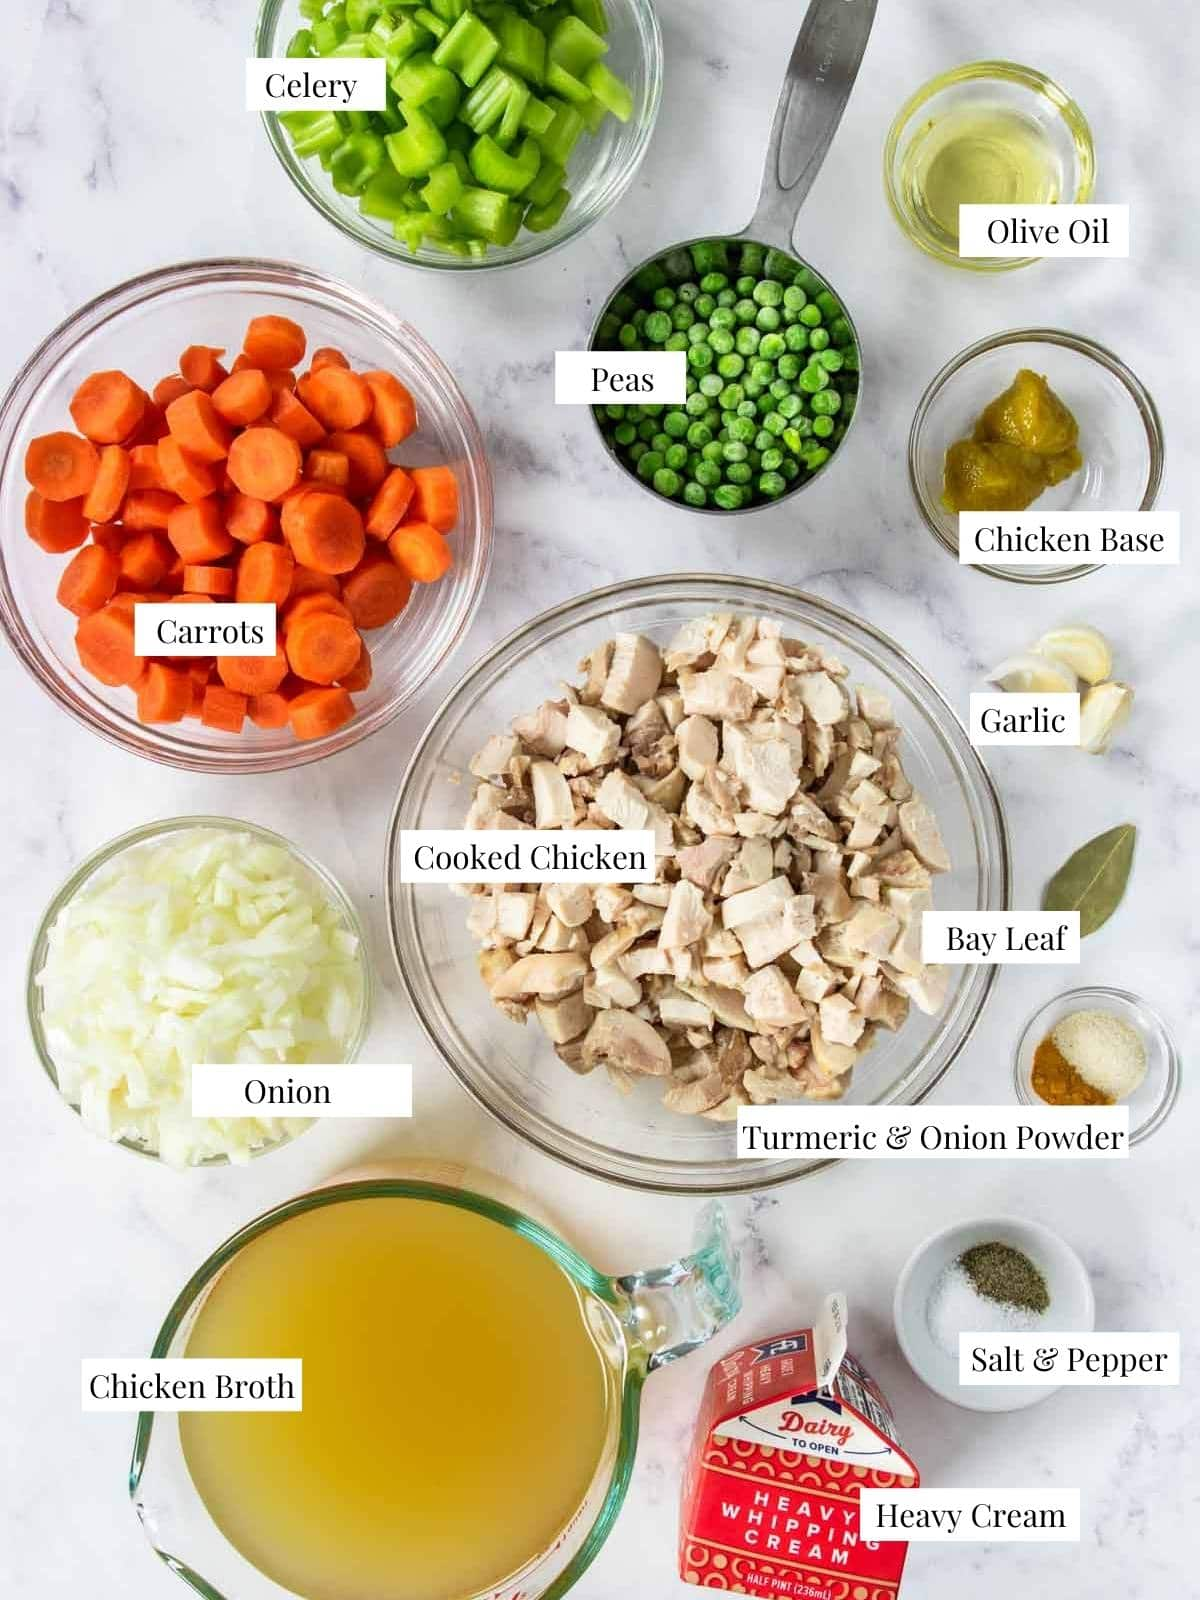 ingredients laid out on a table with text labels